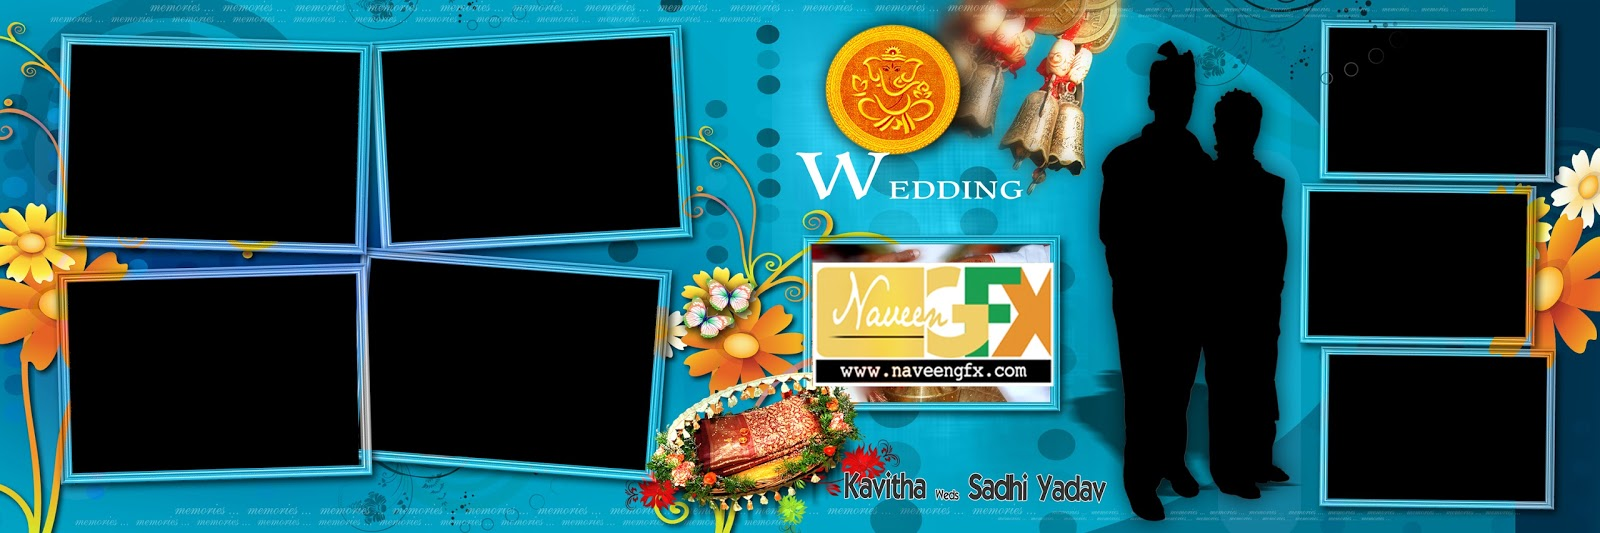 Photoshop wedding album backgrounds psd free download xilusat photoshop wedding album templates psd free download maxwellsz